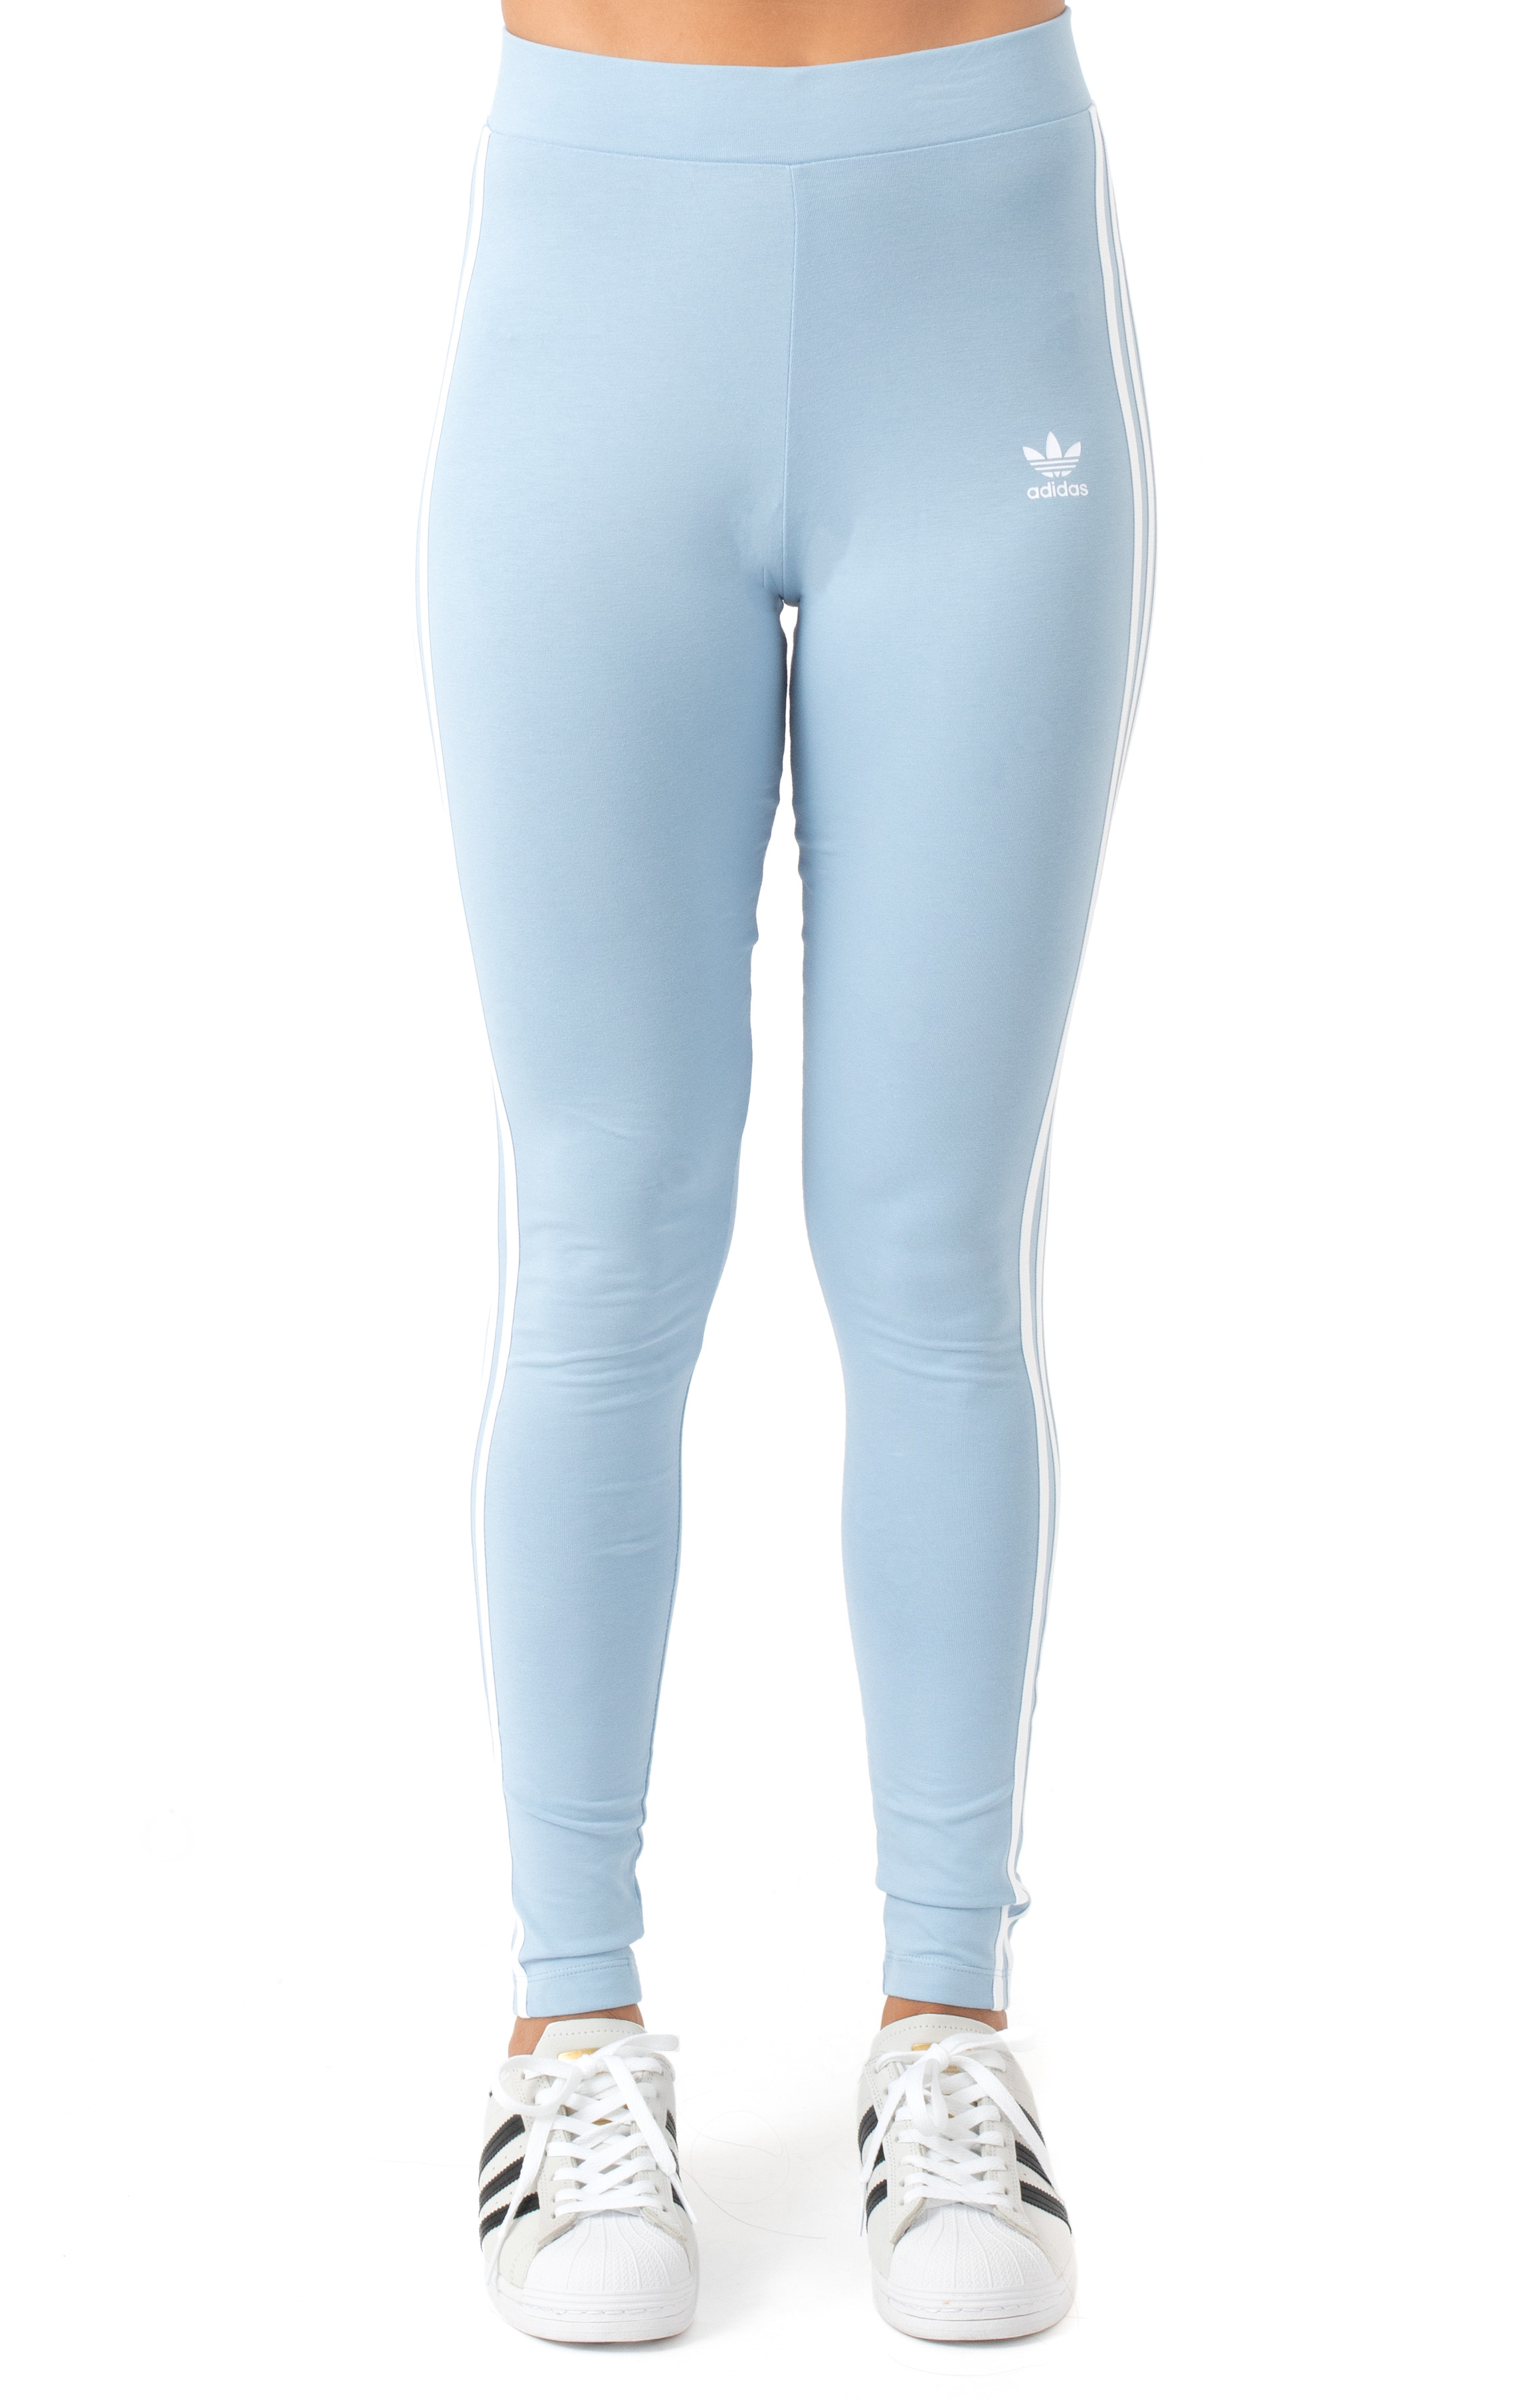 3 Stripes Tights - Ambient Sky  2